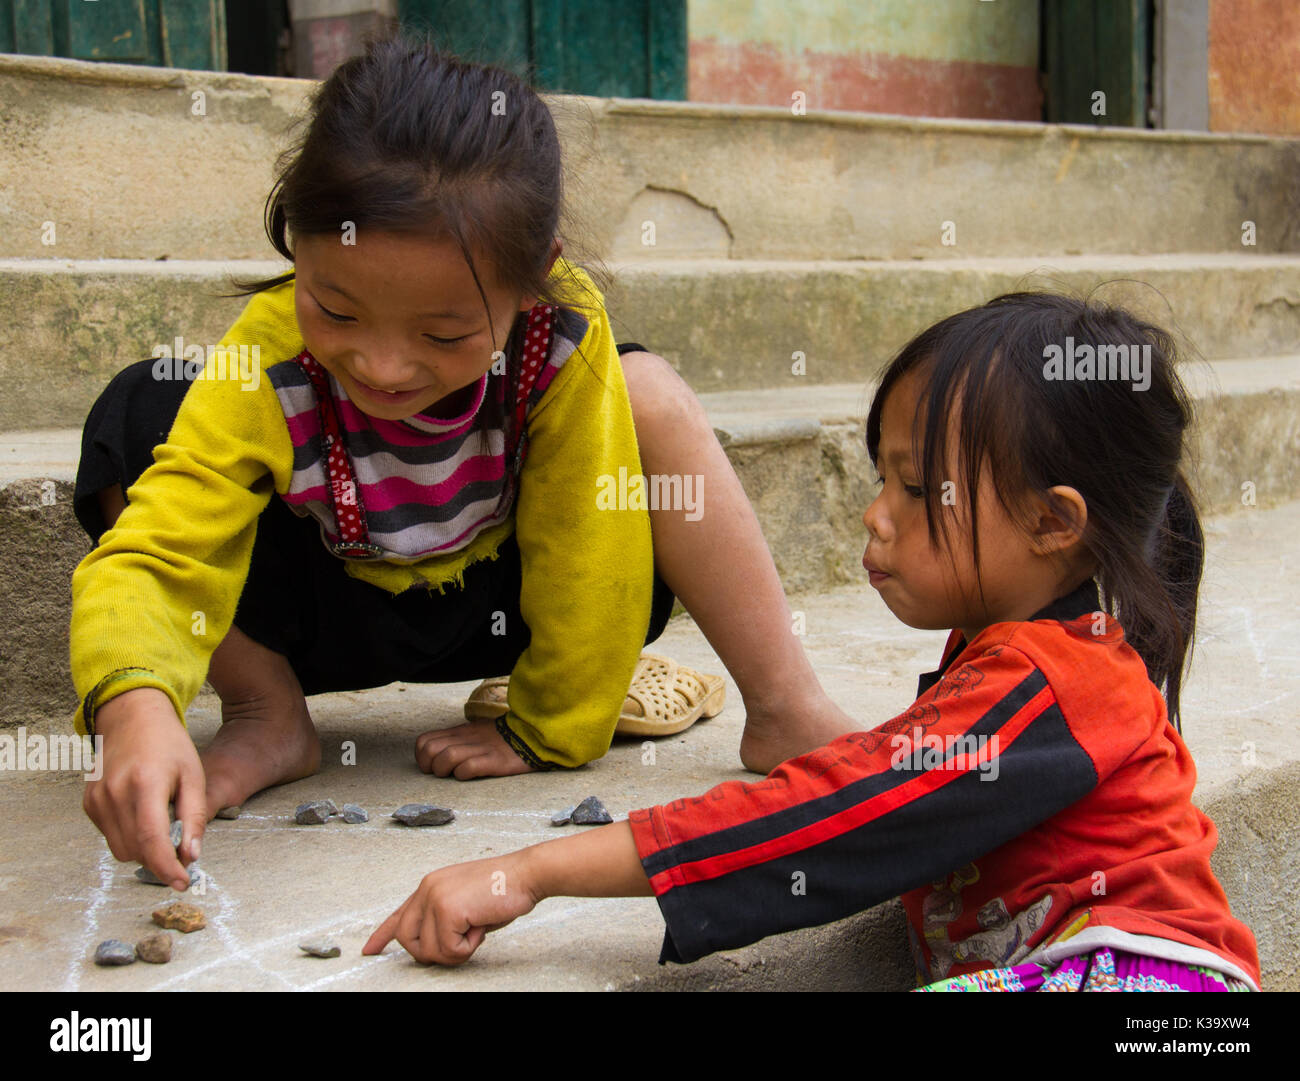 Children play game with chalk and rocks in North Vietnam on Oct 21, 2011 - Stock Image